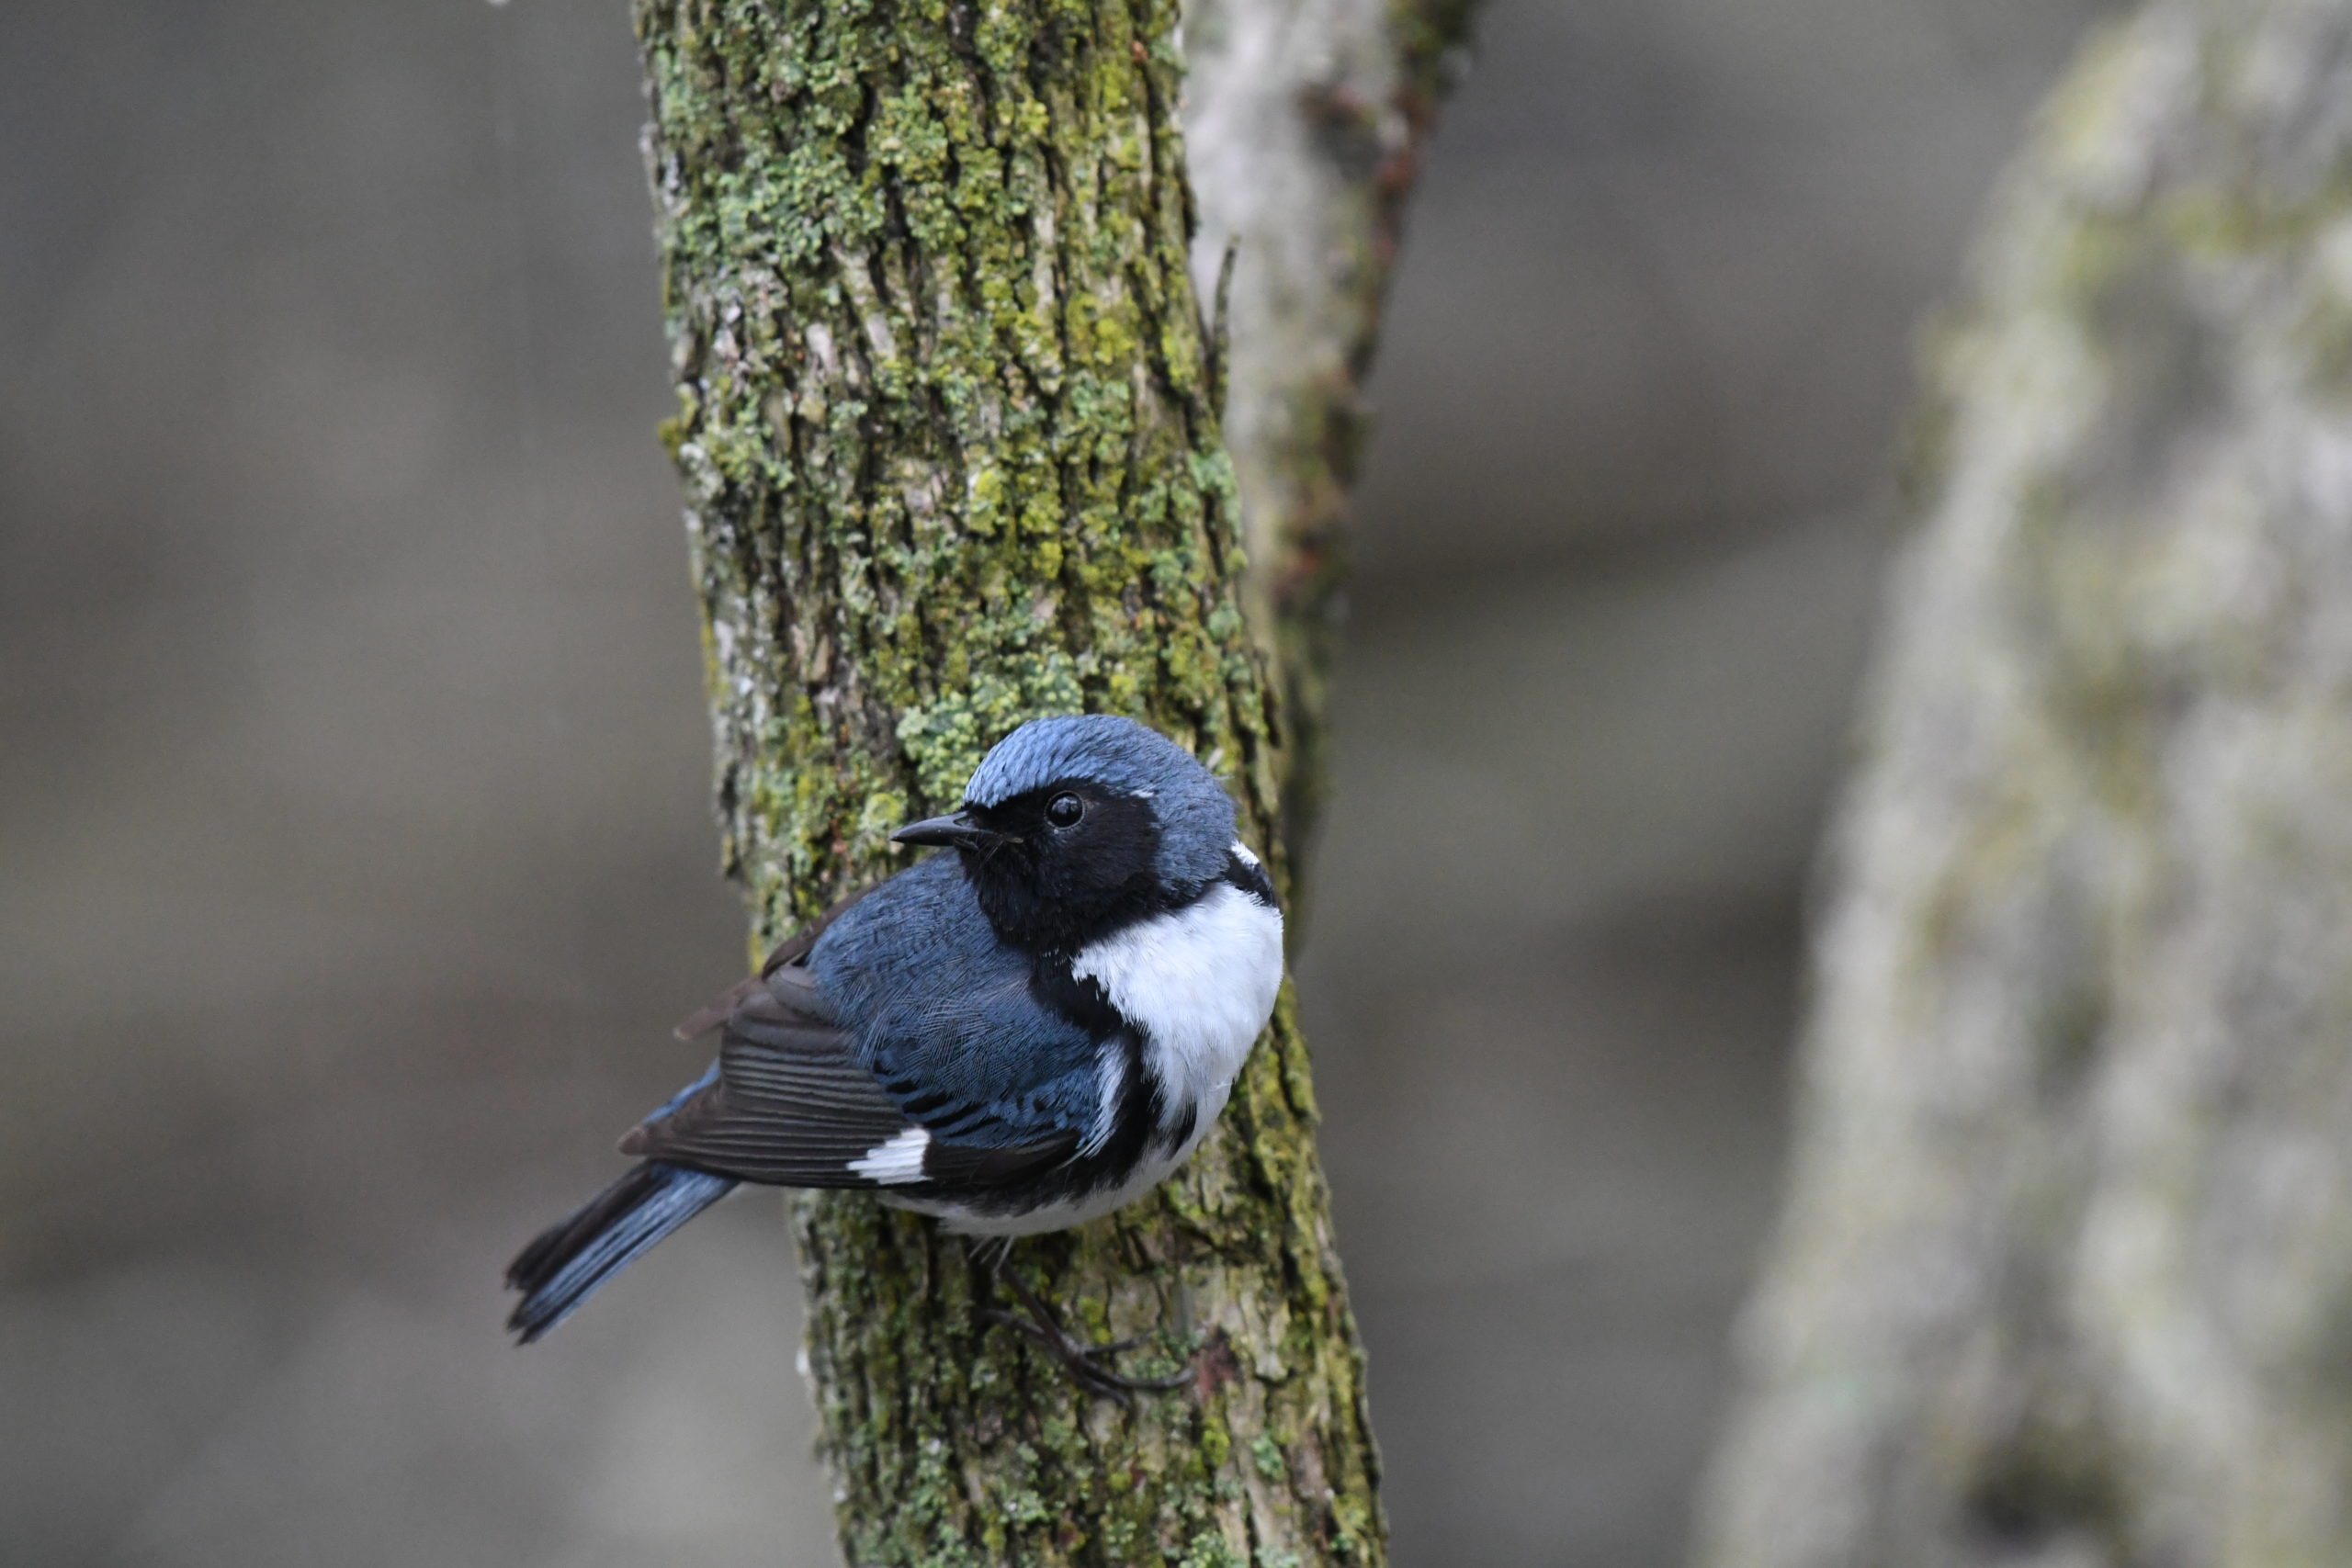 small blue, black, and white bird perched on a mossy tree trunk